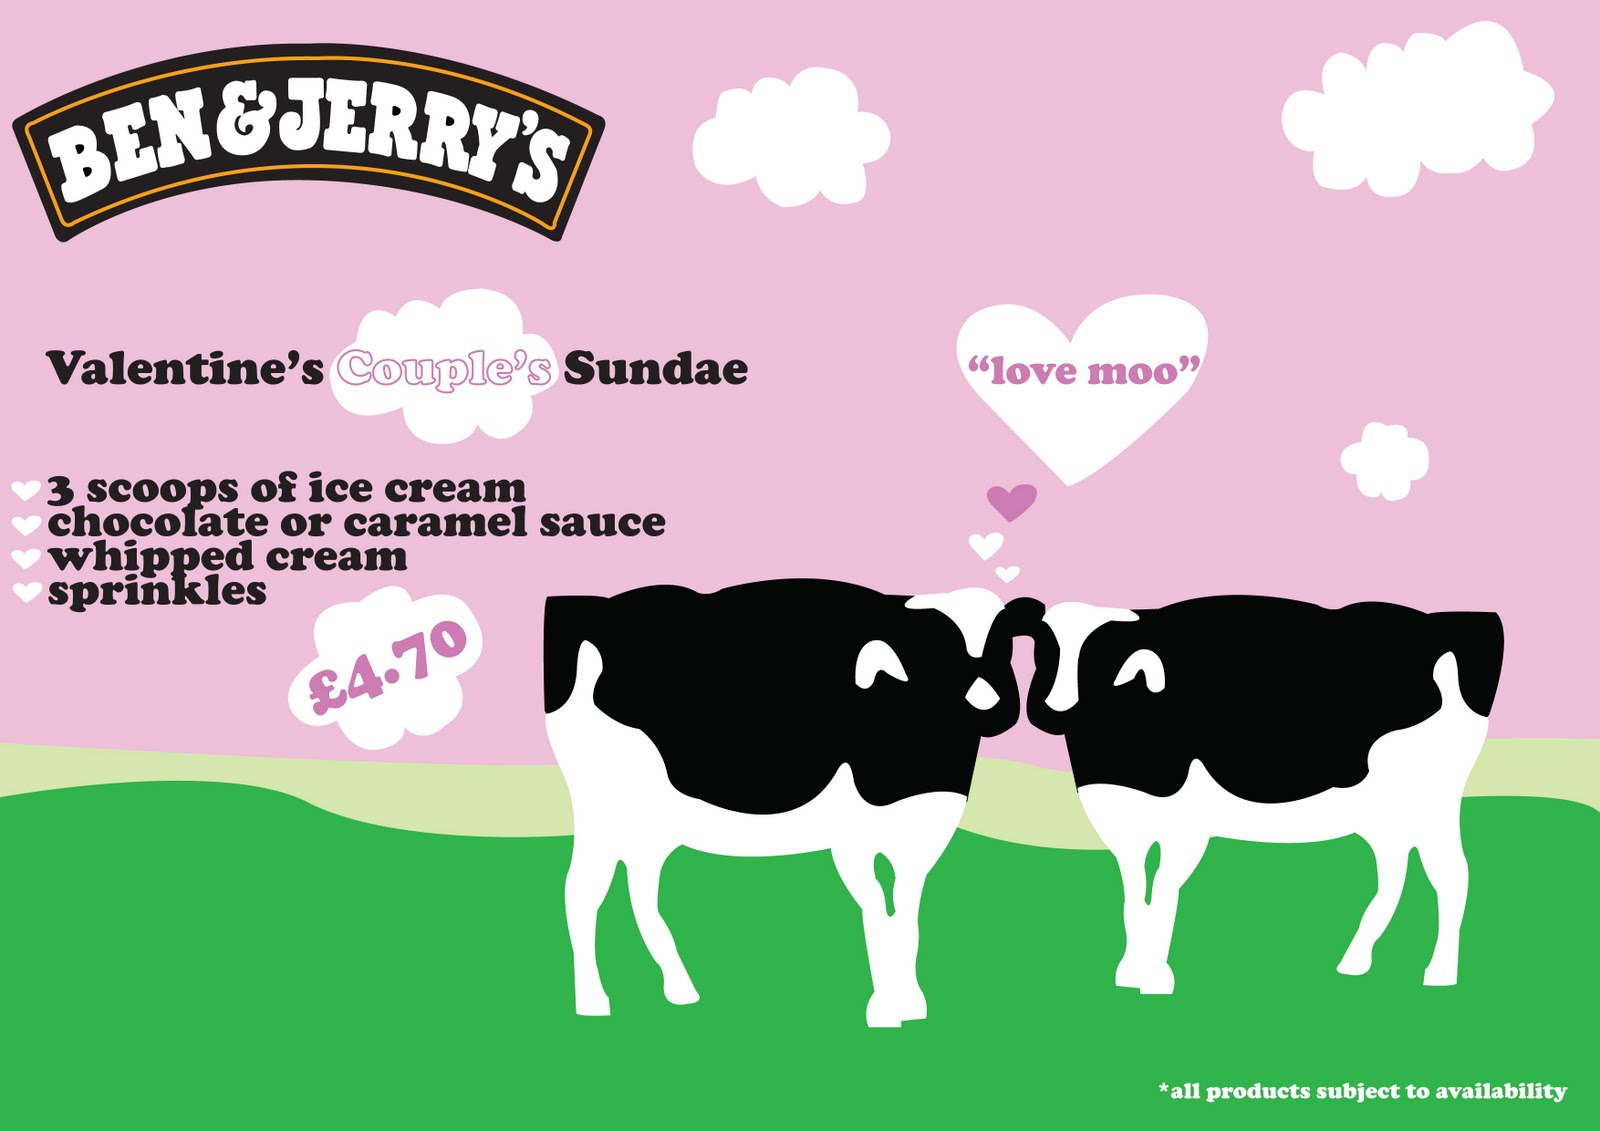 ben and jerrys essay Also excluded from the 75% are corporate sponsorships that have as one of their purposes the furtherance of ben & jerry's marketing goals for 1999, the 75% amounted to approximately $1,120,000.